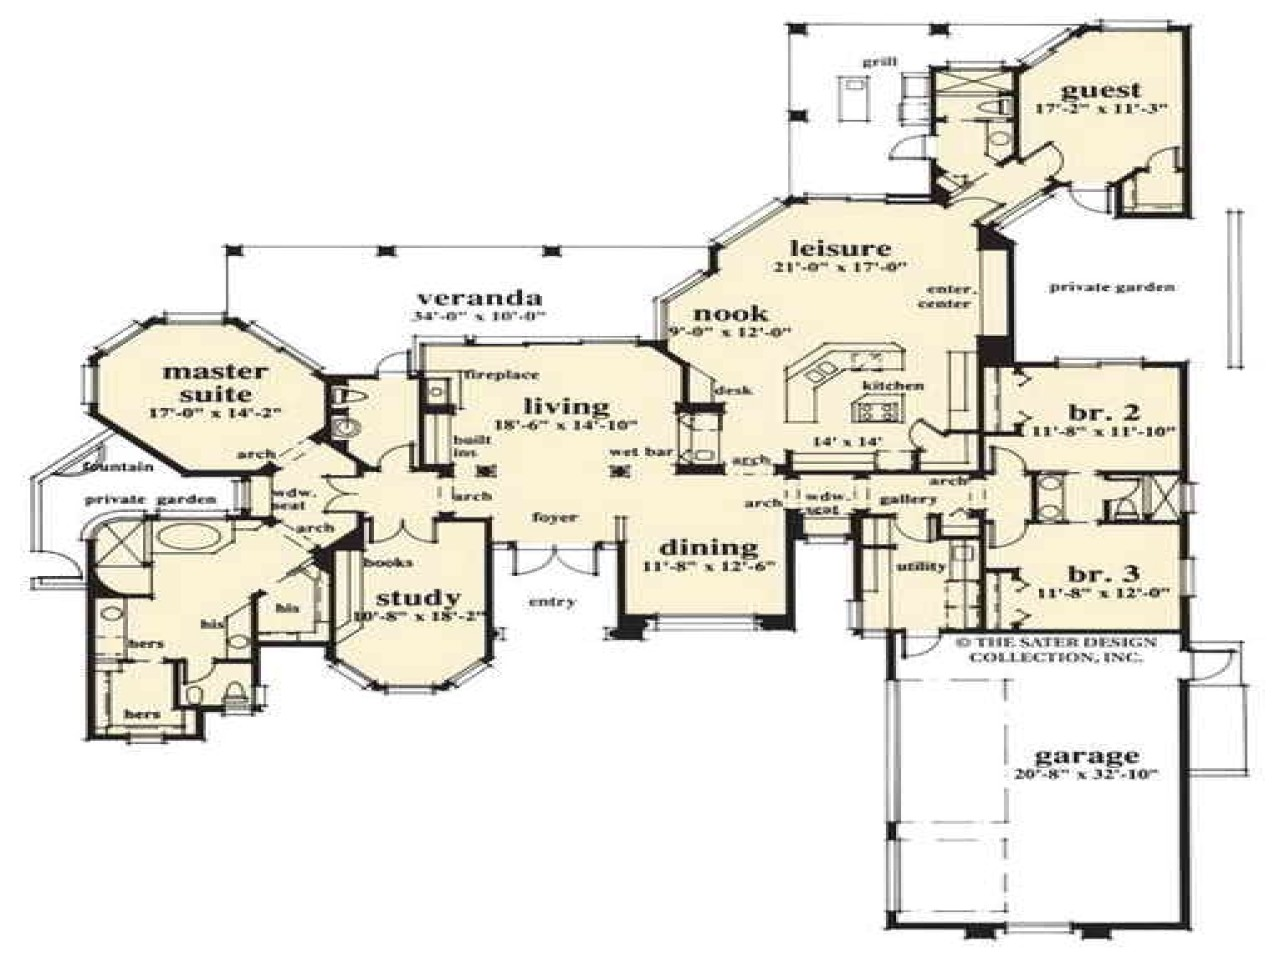 Home Plans with Prices to Build Low Cost to Build House Plans Low Cost Icon House Plans